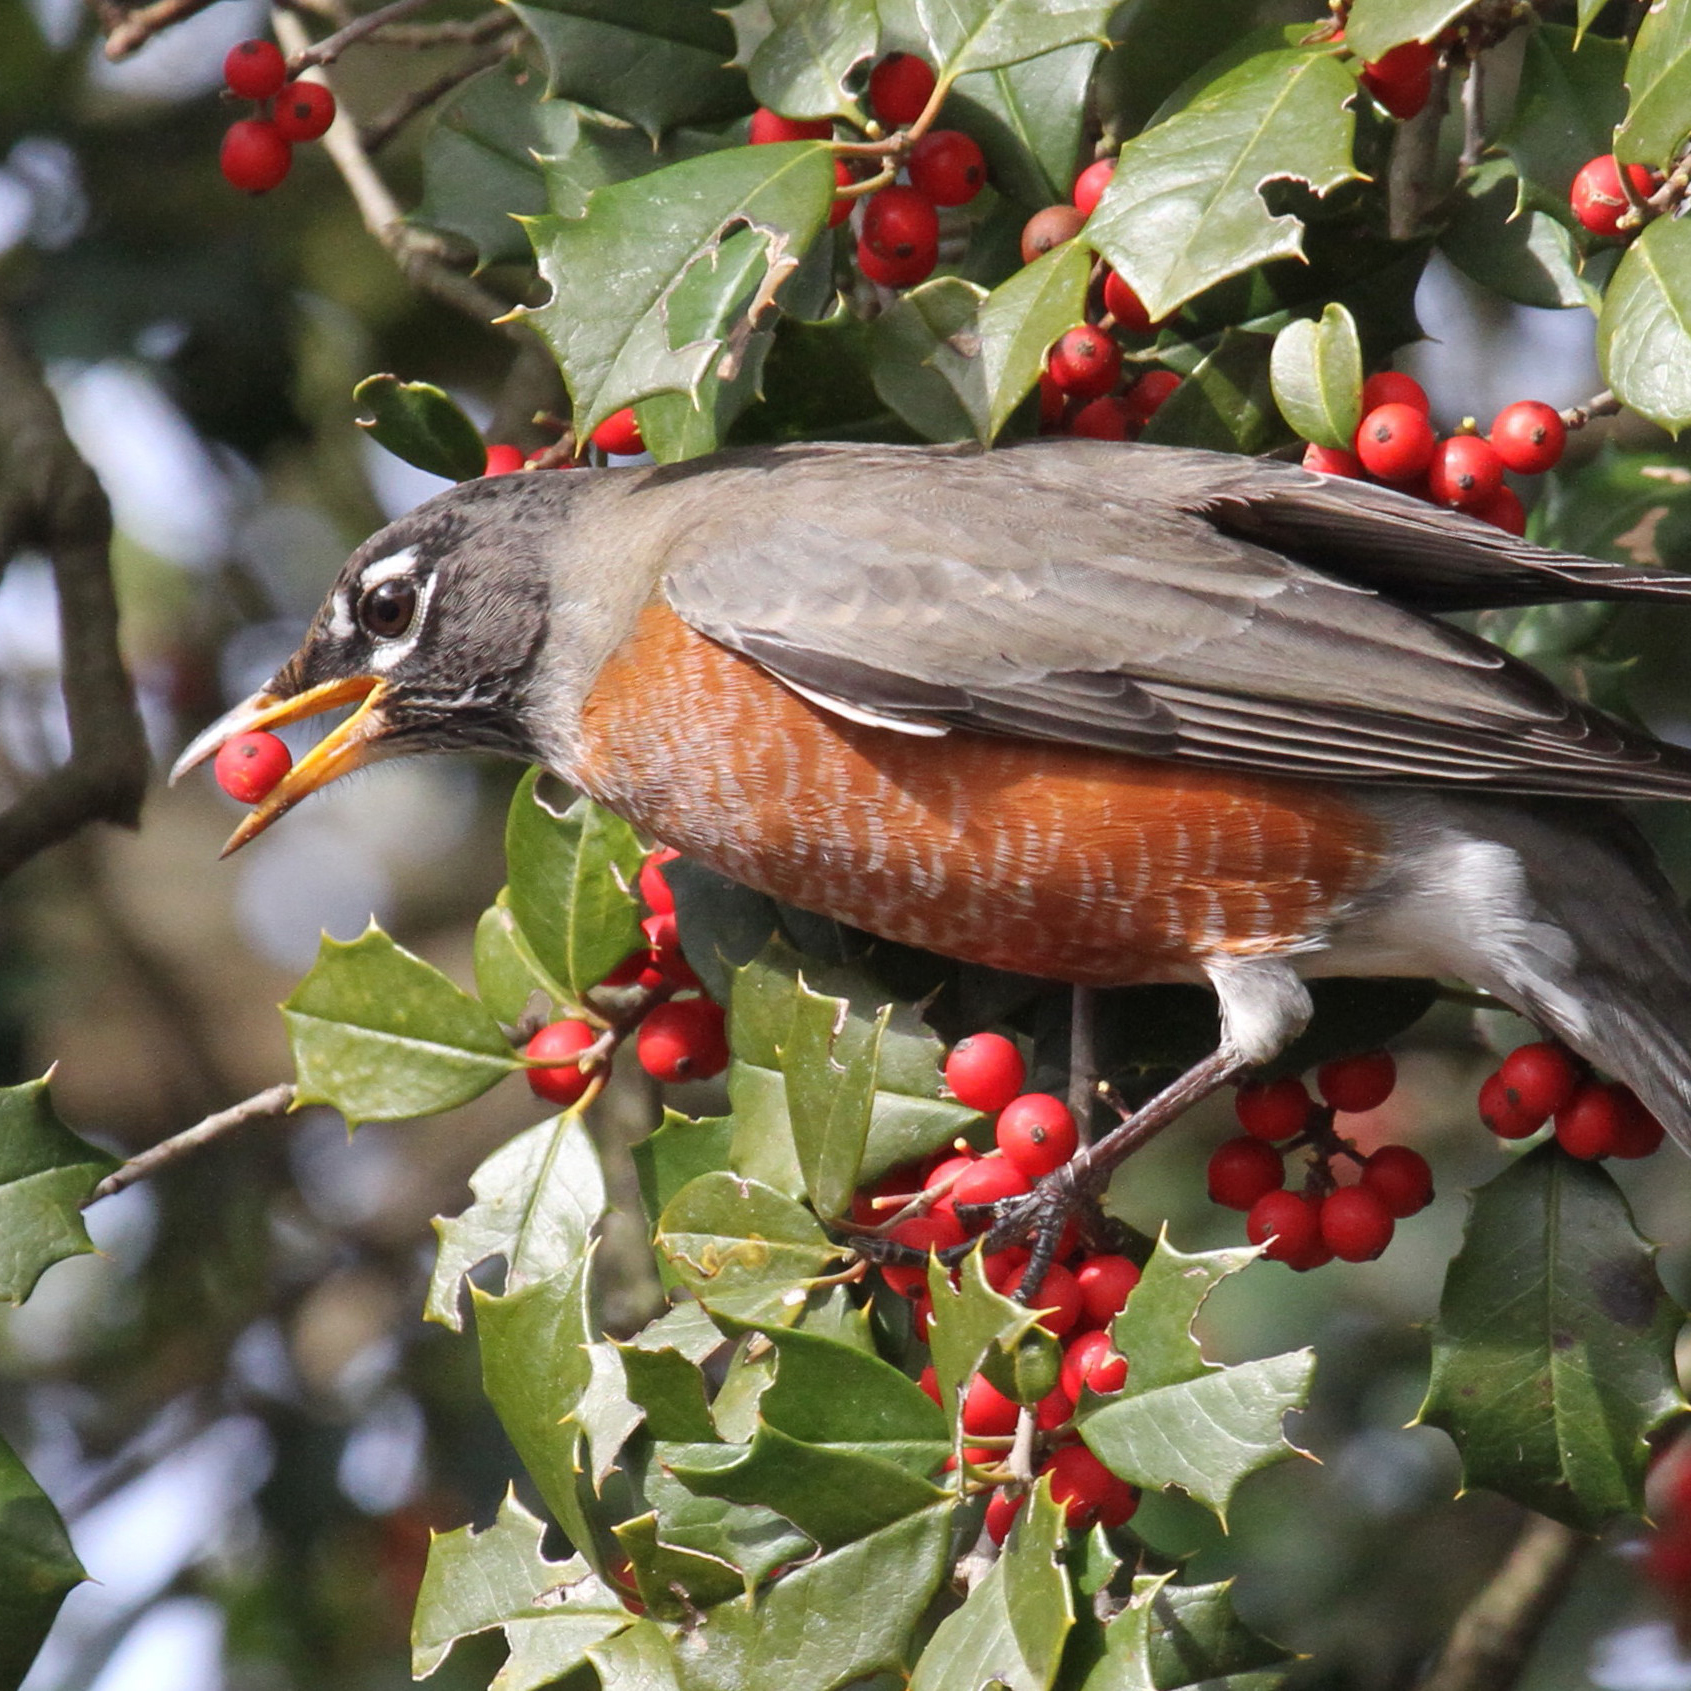 American Holly - Ilex opacaThis large shrub to small/medium sized tree produces showy red fruit on female plants that are sought after by mockingbirds, thrashers, robins, wrens, warblers and woodpeckers.